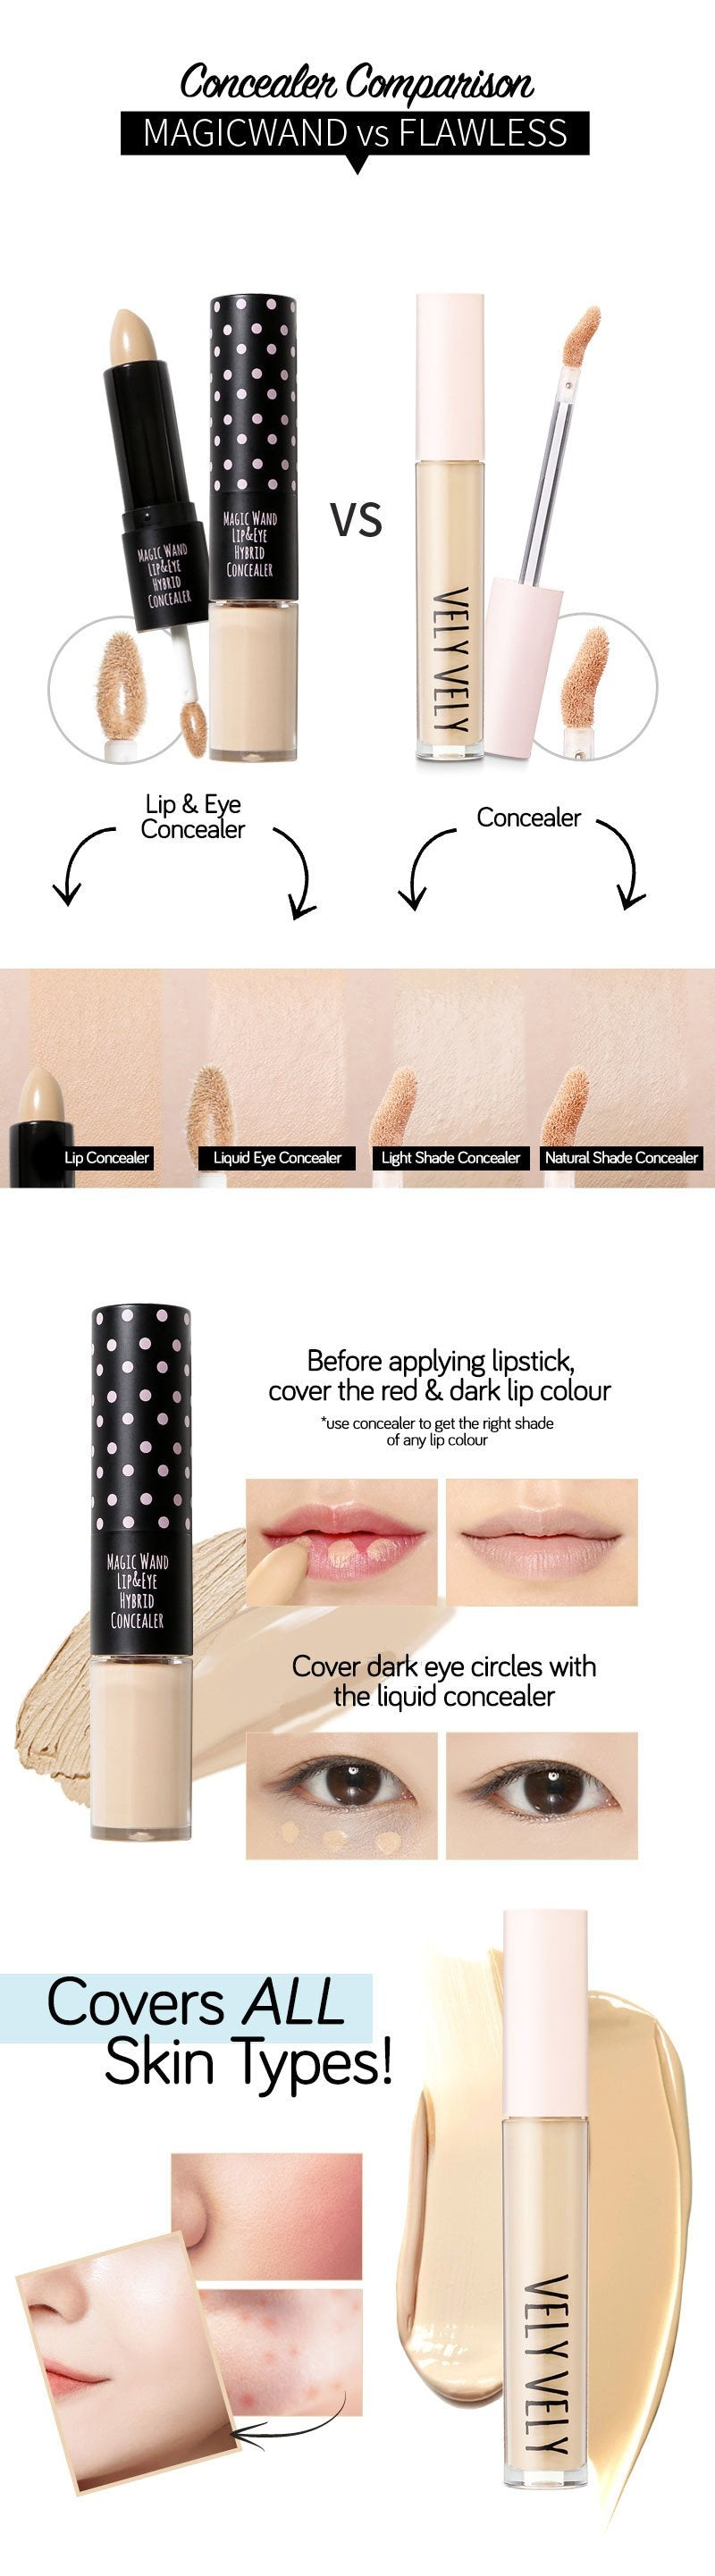 Check out the difference between the Magic Wand Lip and Eye Concealer and IM Custom Flawless Concealer